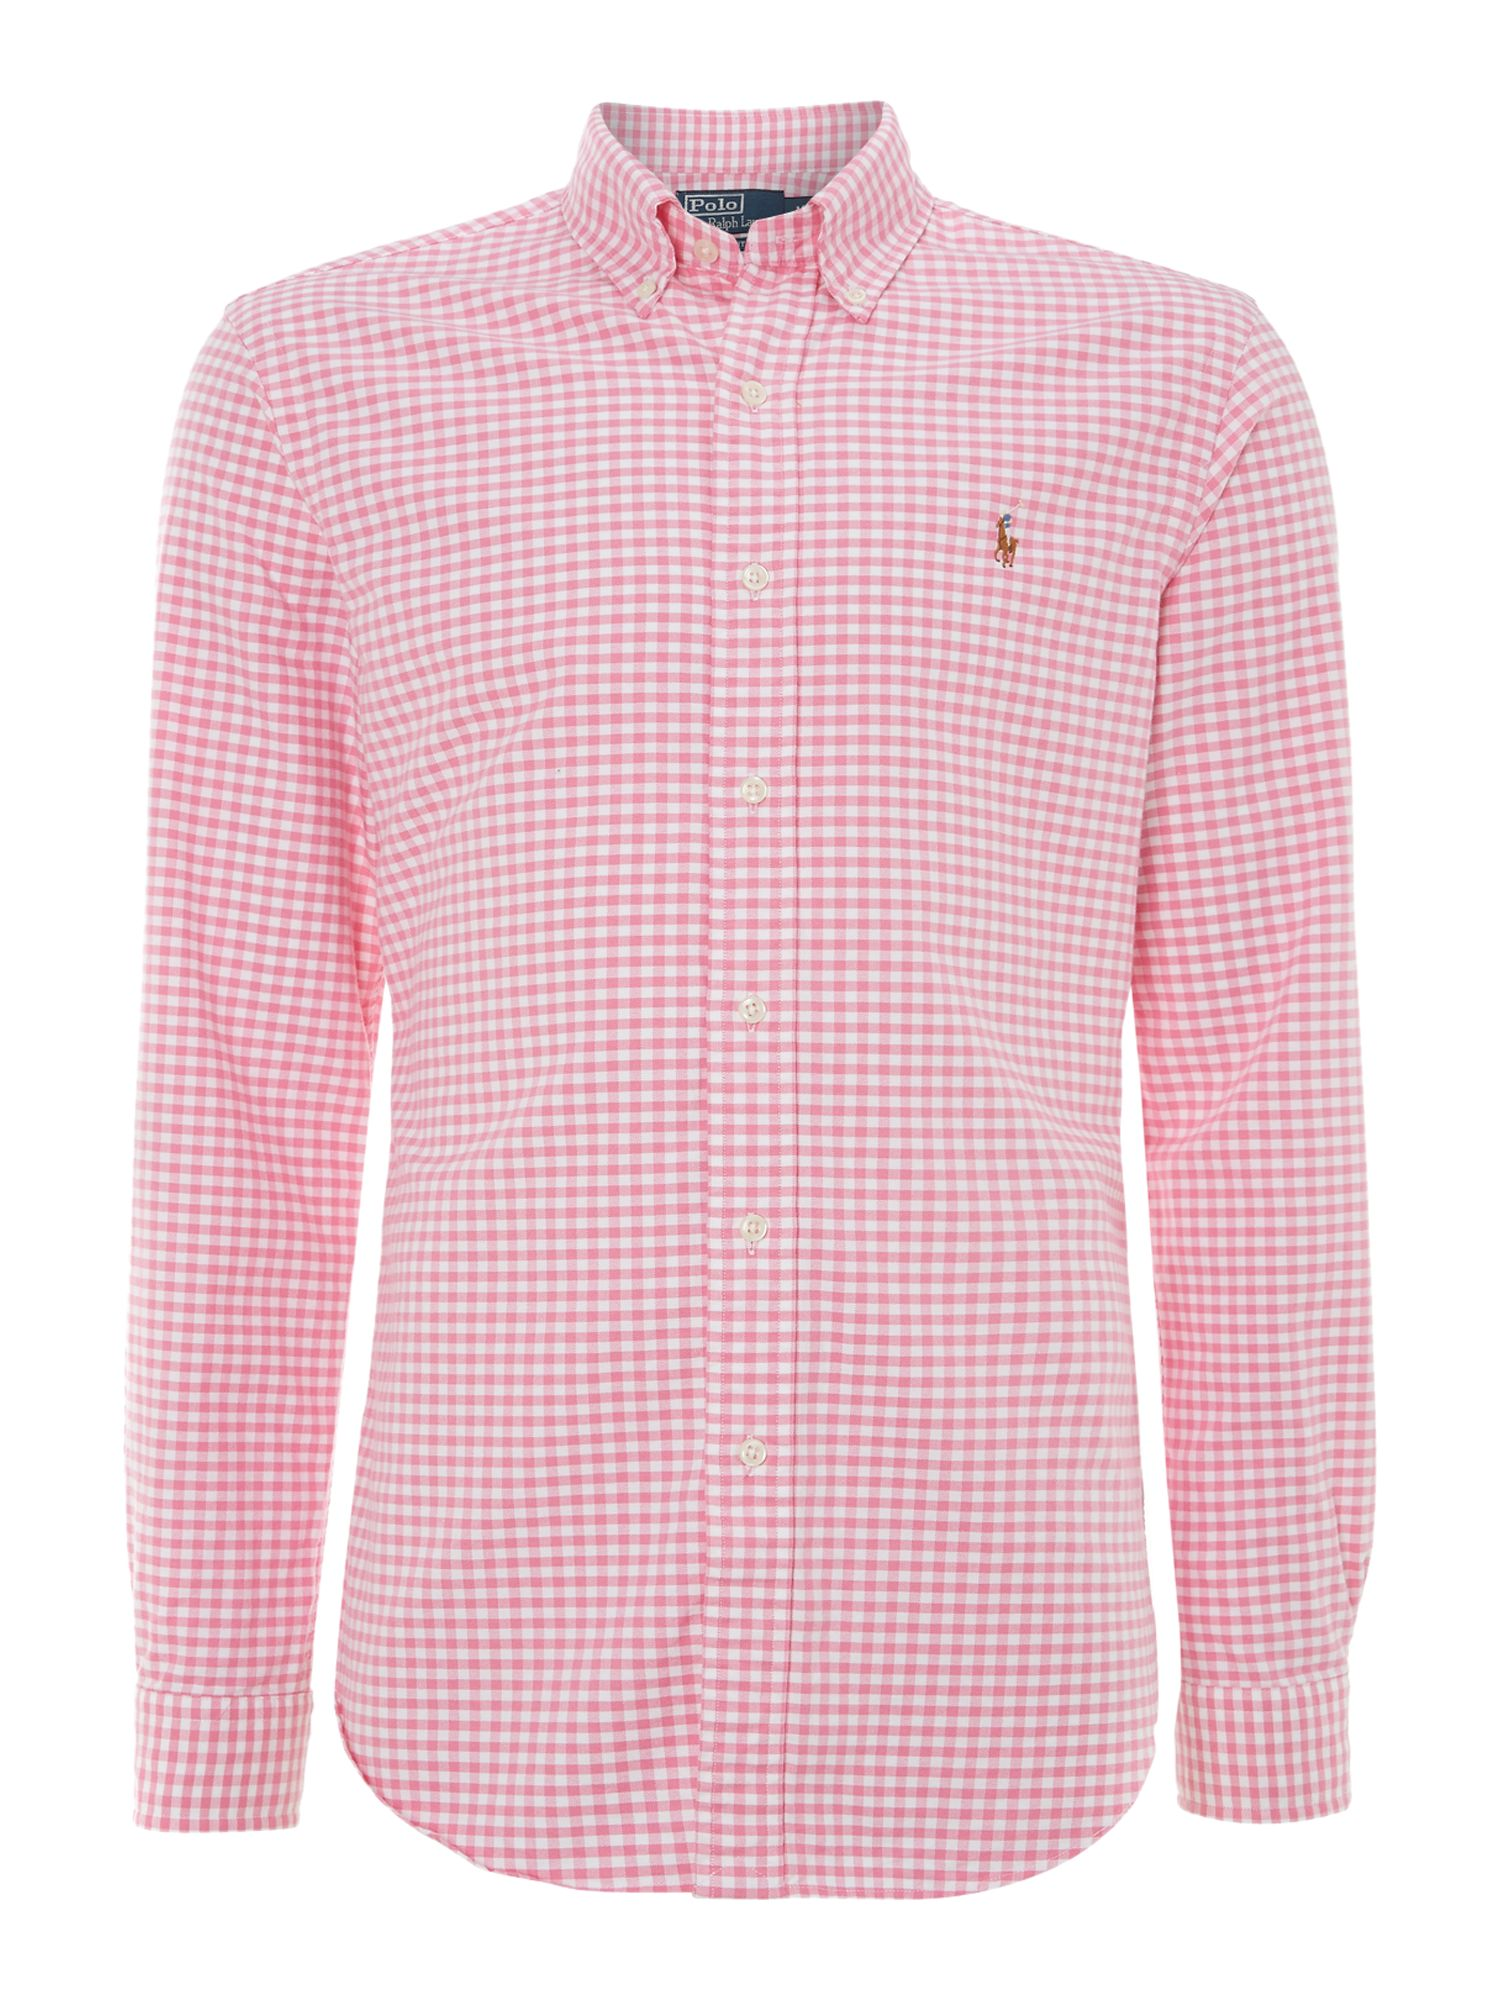 Classic slim fit long sleeve gingham shirt